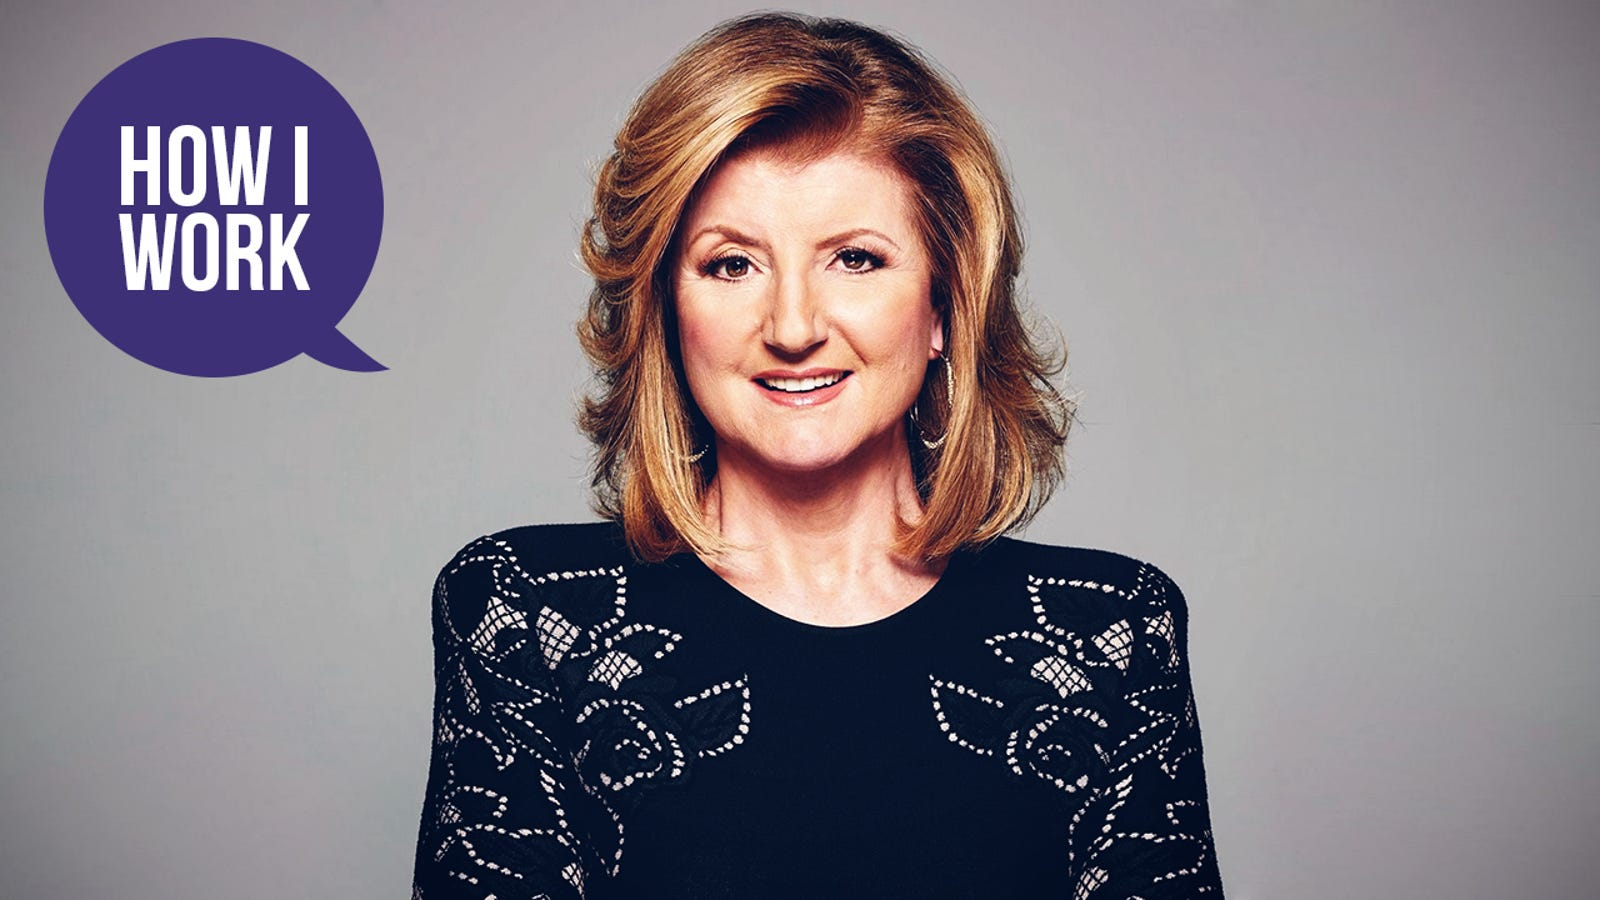 The more we hear about Arianna Huffington's worklife theory, the more we like it